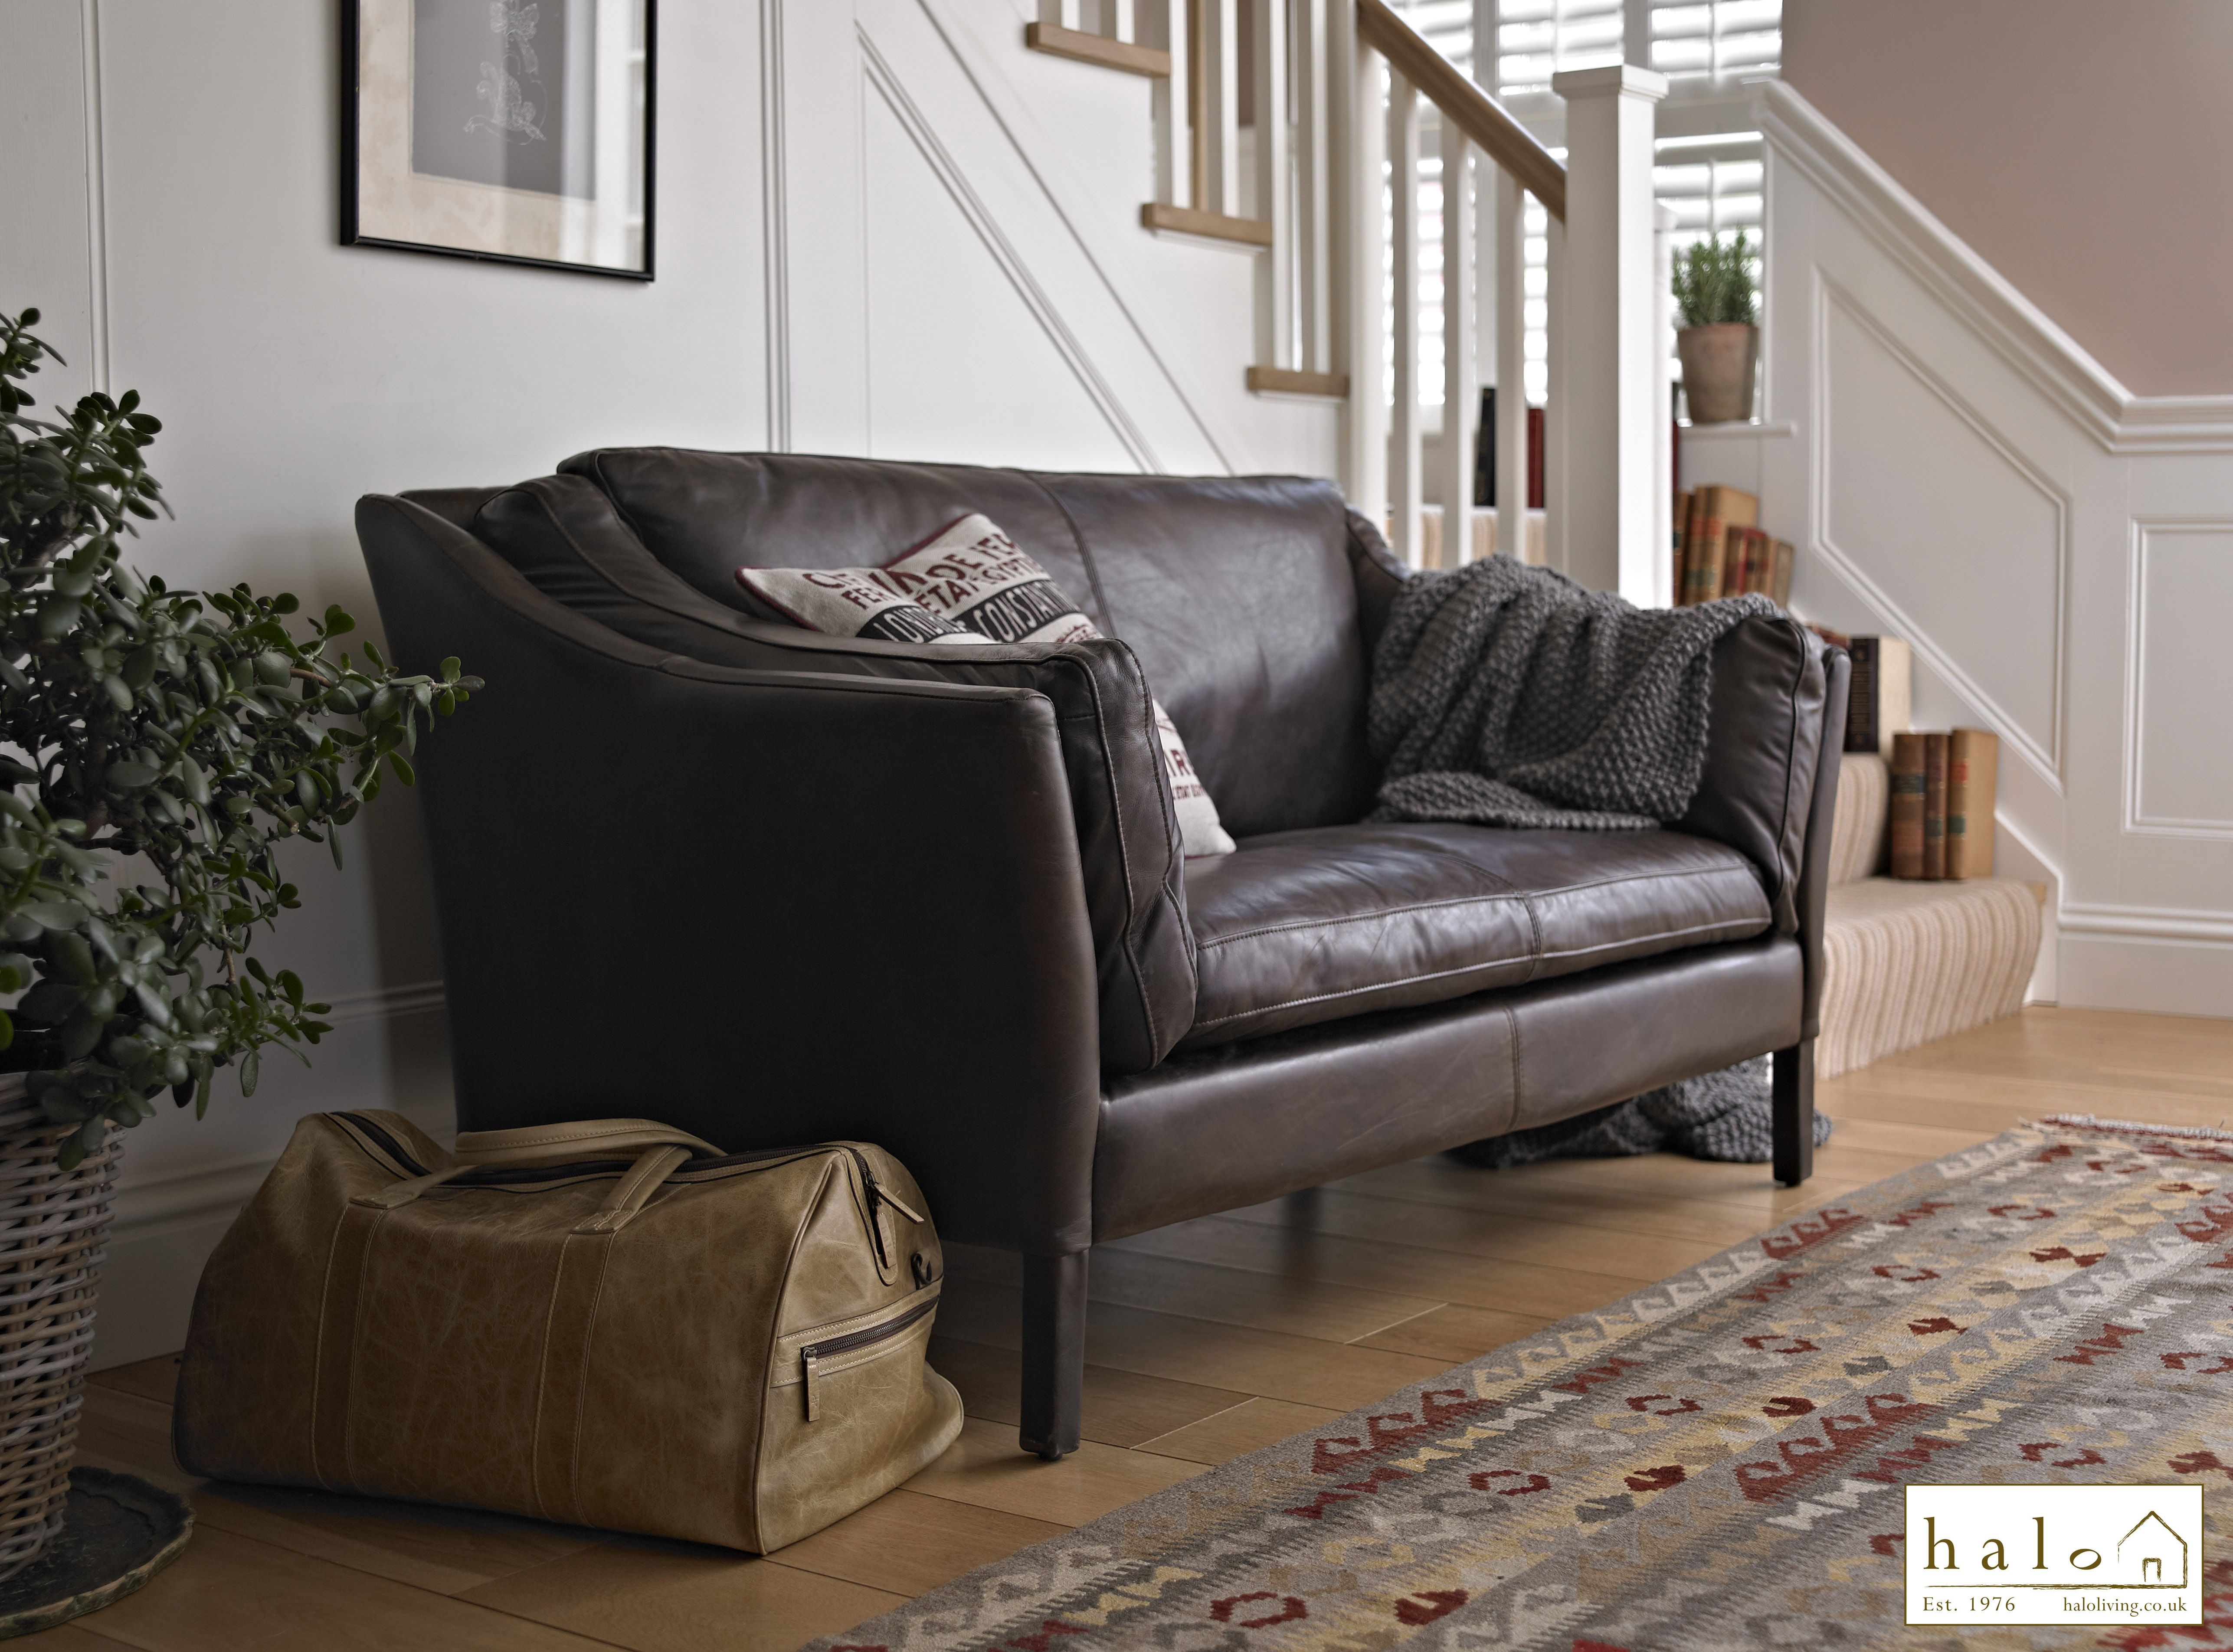 halo kensington leather sofa chesterfield fabric malaysia lovely couches www